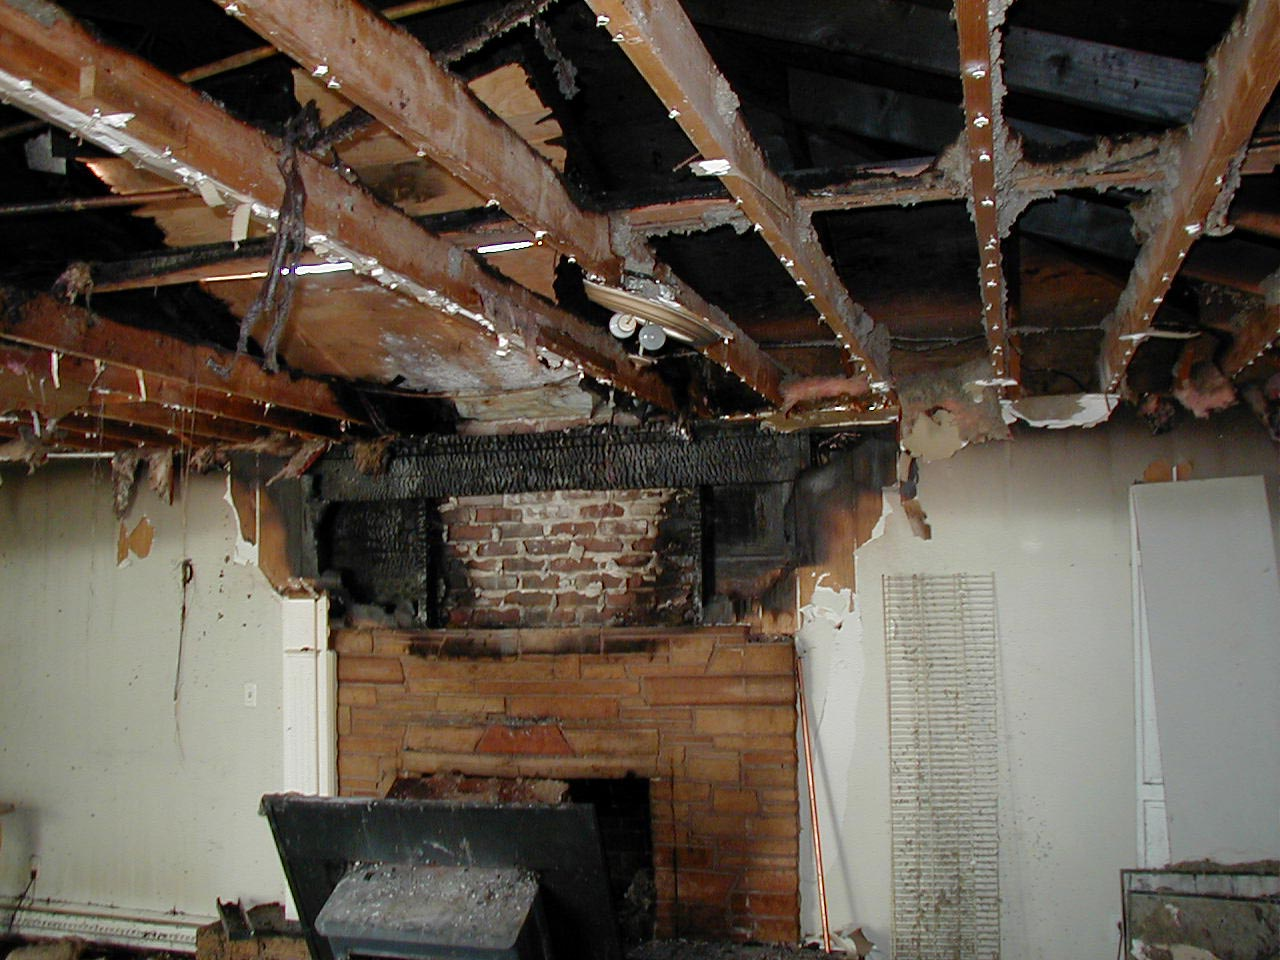 Fire Damage Restoration & Cleanup | Recoveron | Eastern, WI |Wildfire Damage